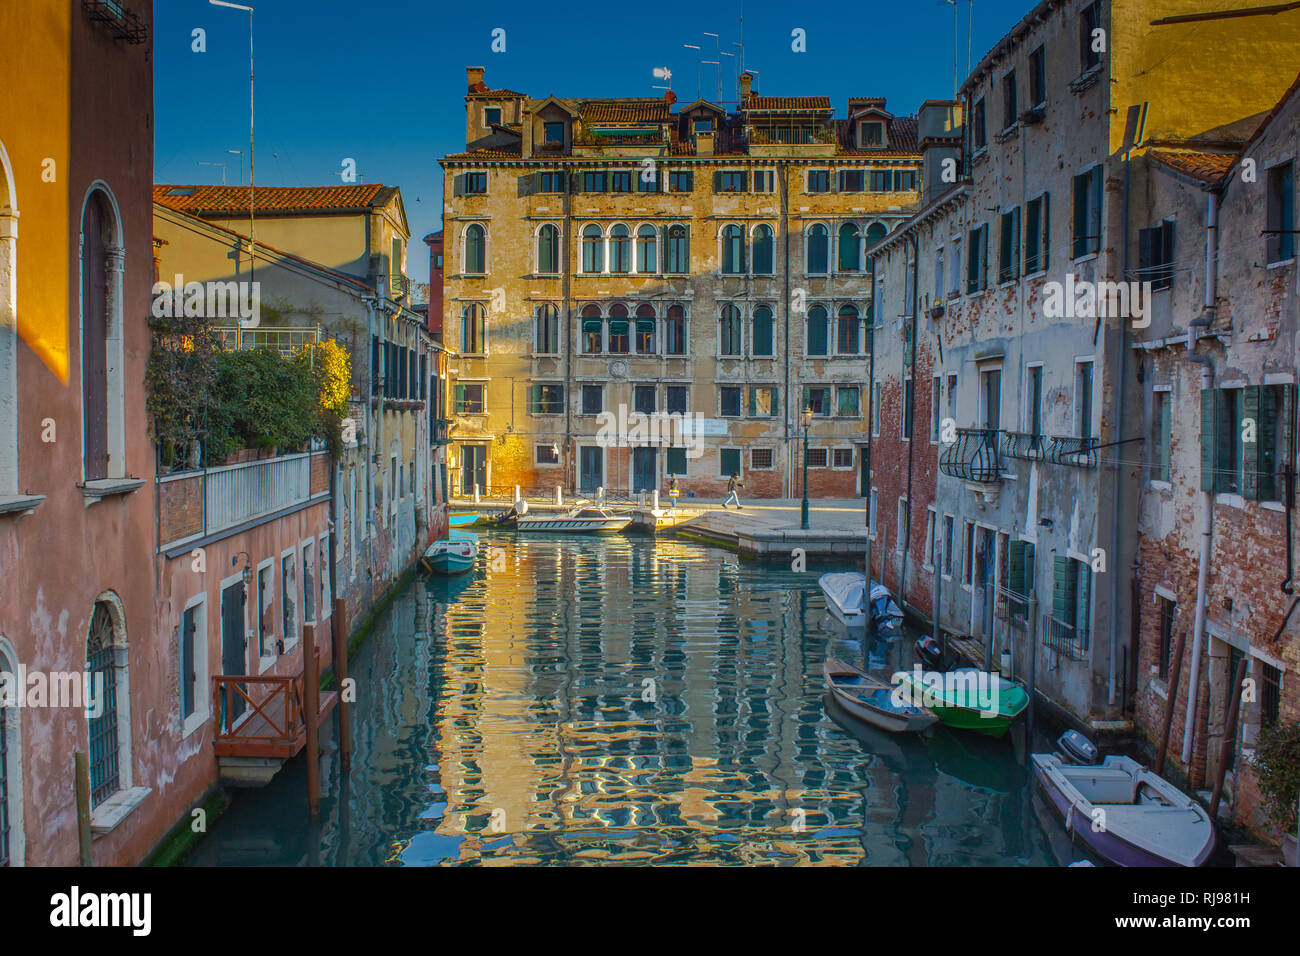 Venice view of buildings - Stock Image